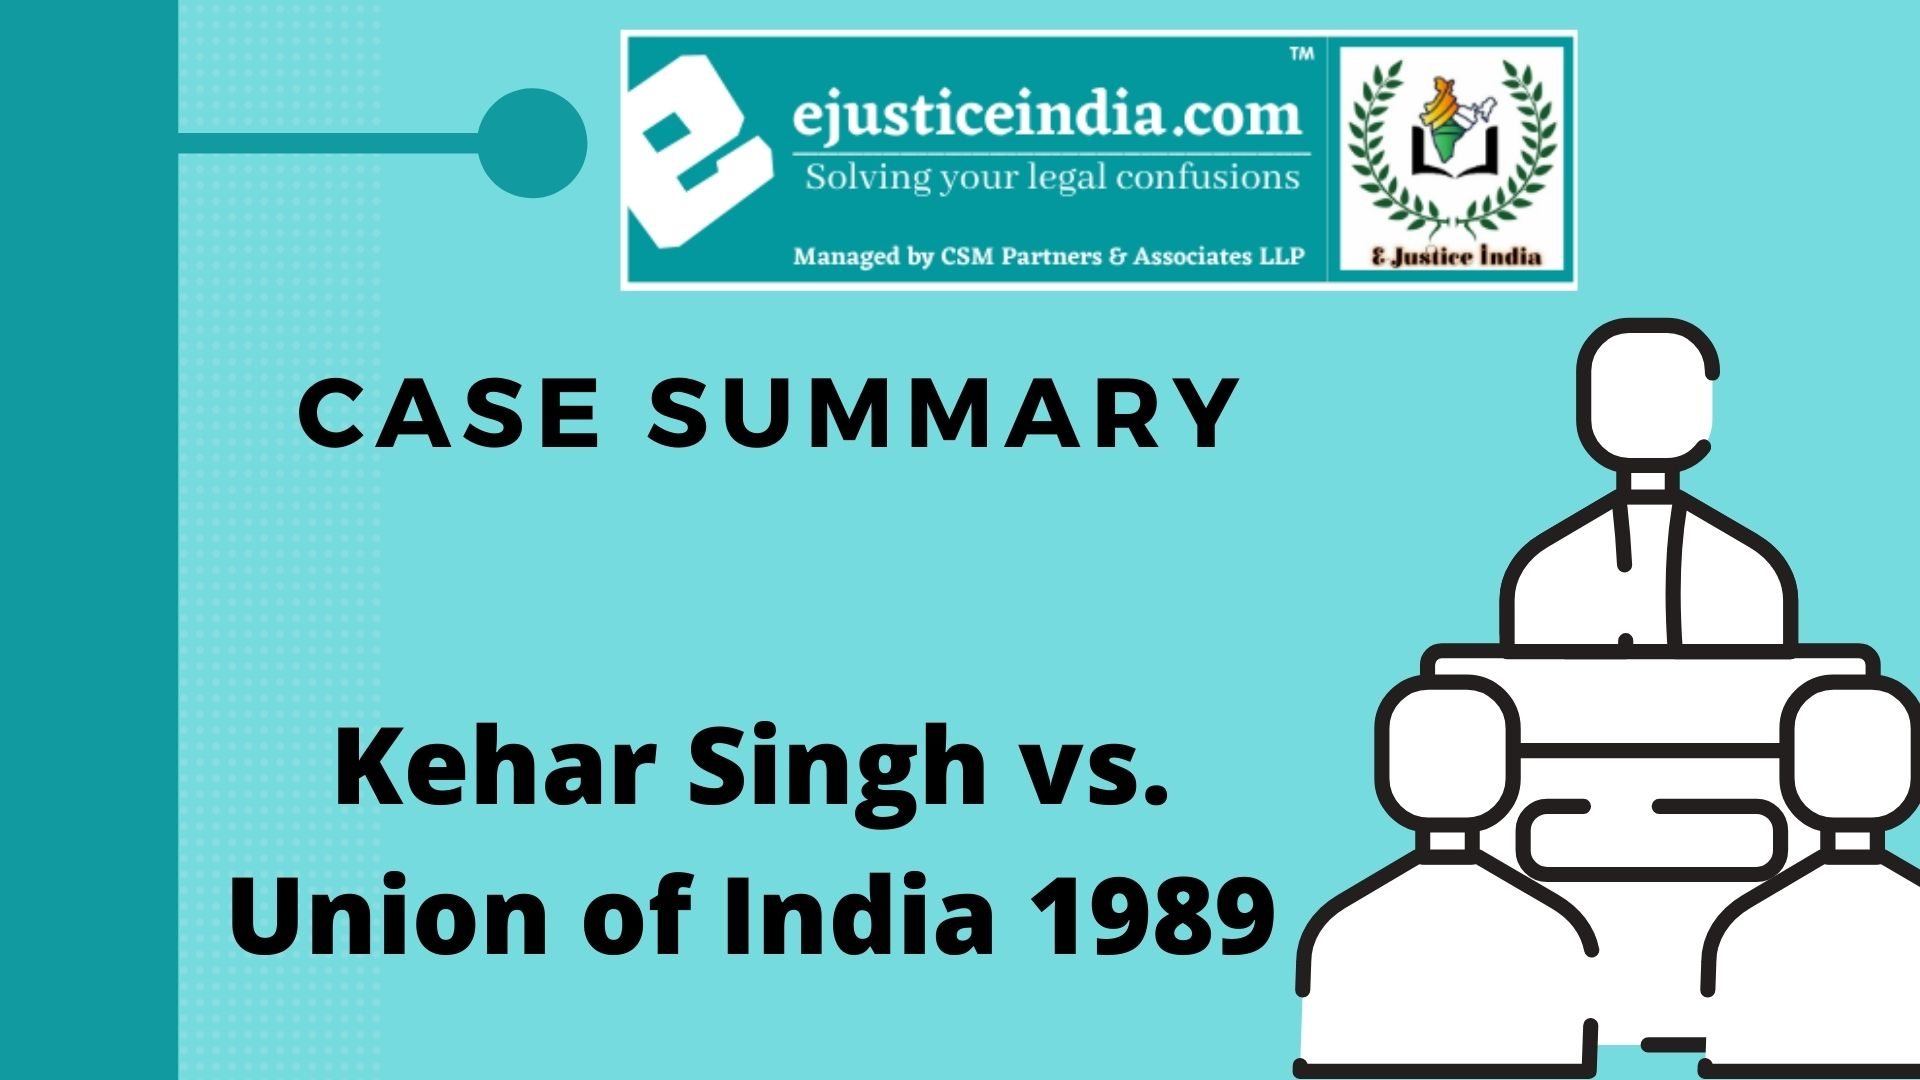 Kehar Singh vs. Union of India 1989